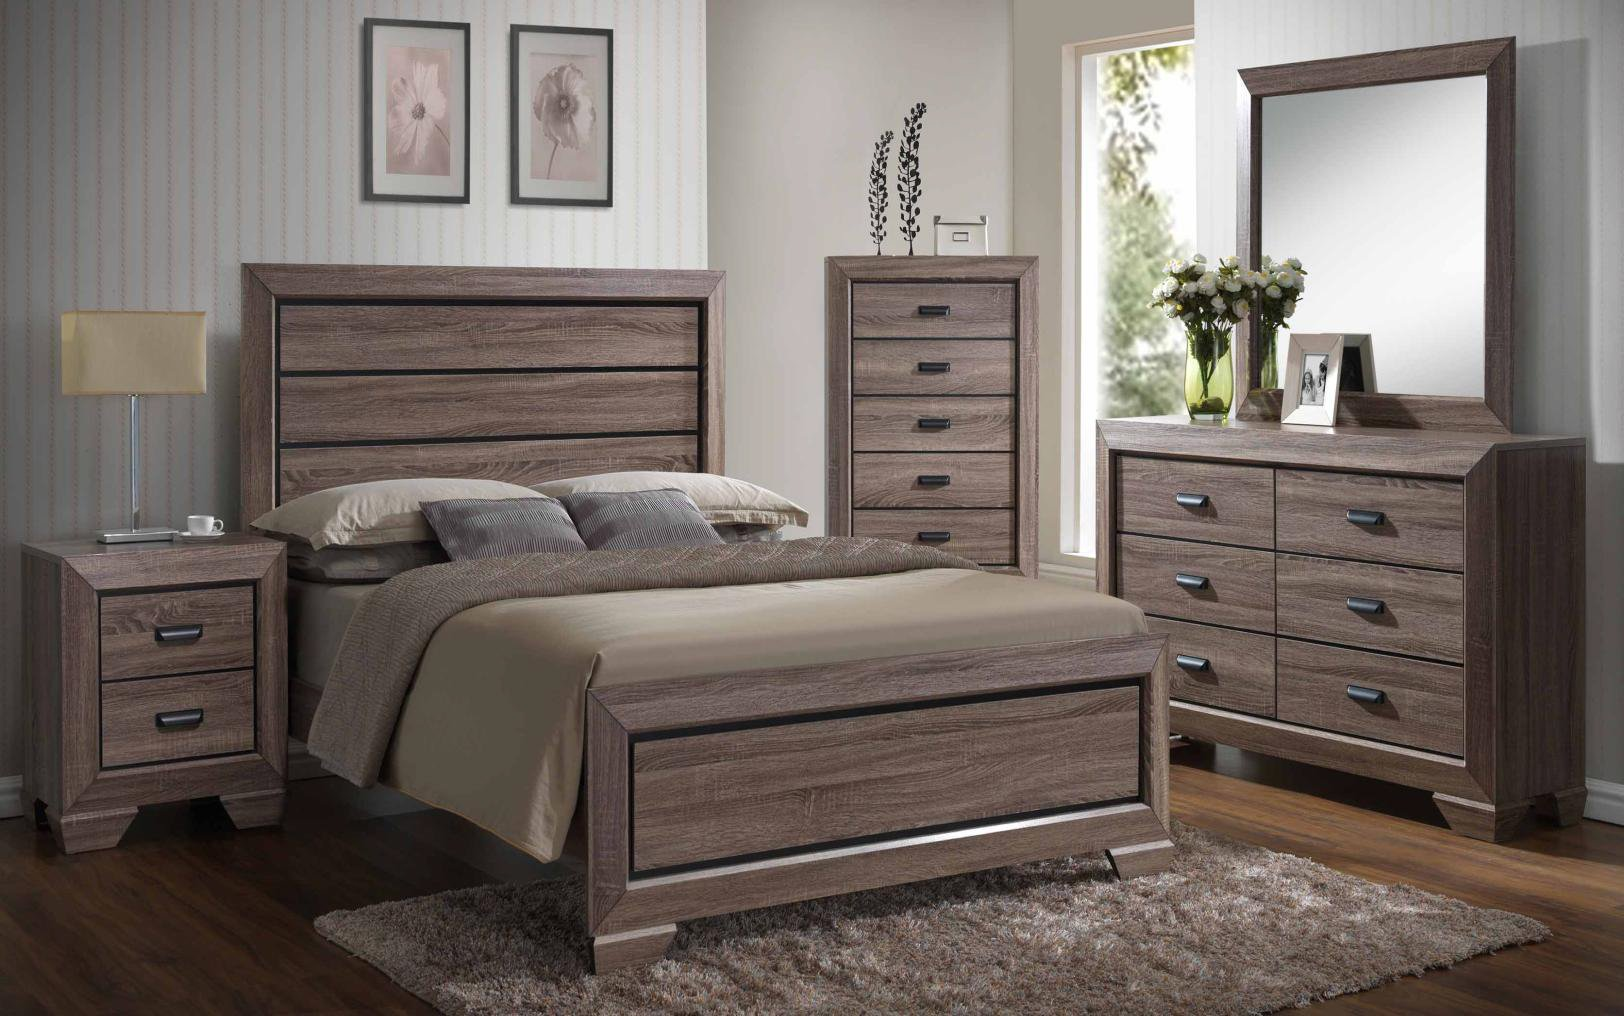 Kings Brand Black/Brown Wood Modern King Size Bedroom Furniture Set, Bed, Dresser, Mirror, Chest & 2 Night Stands